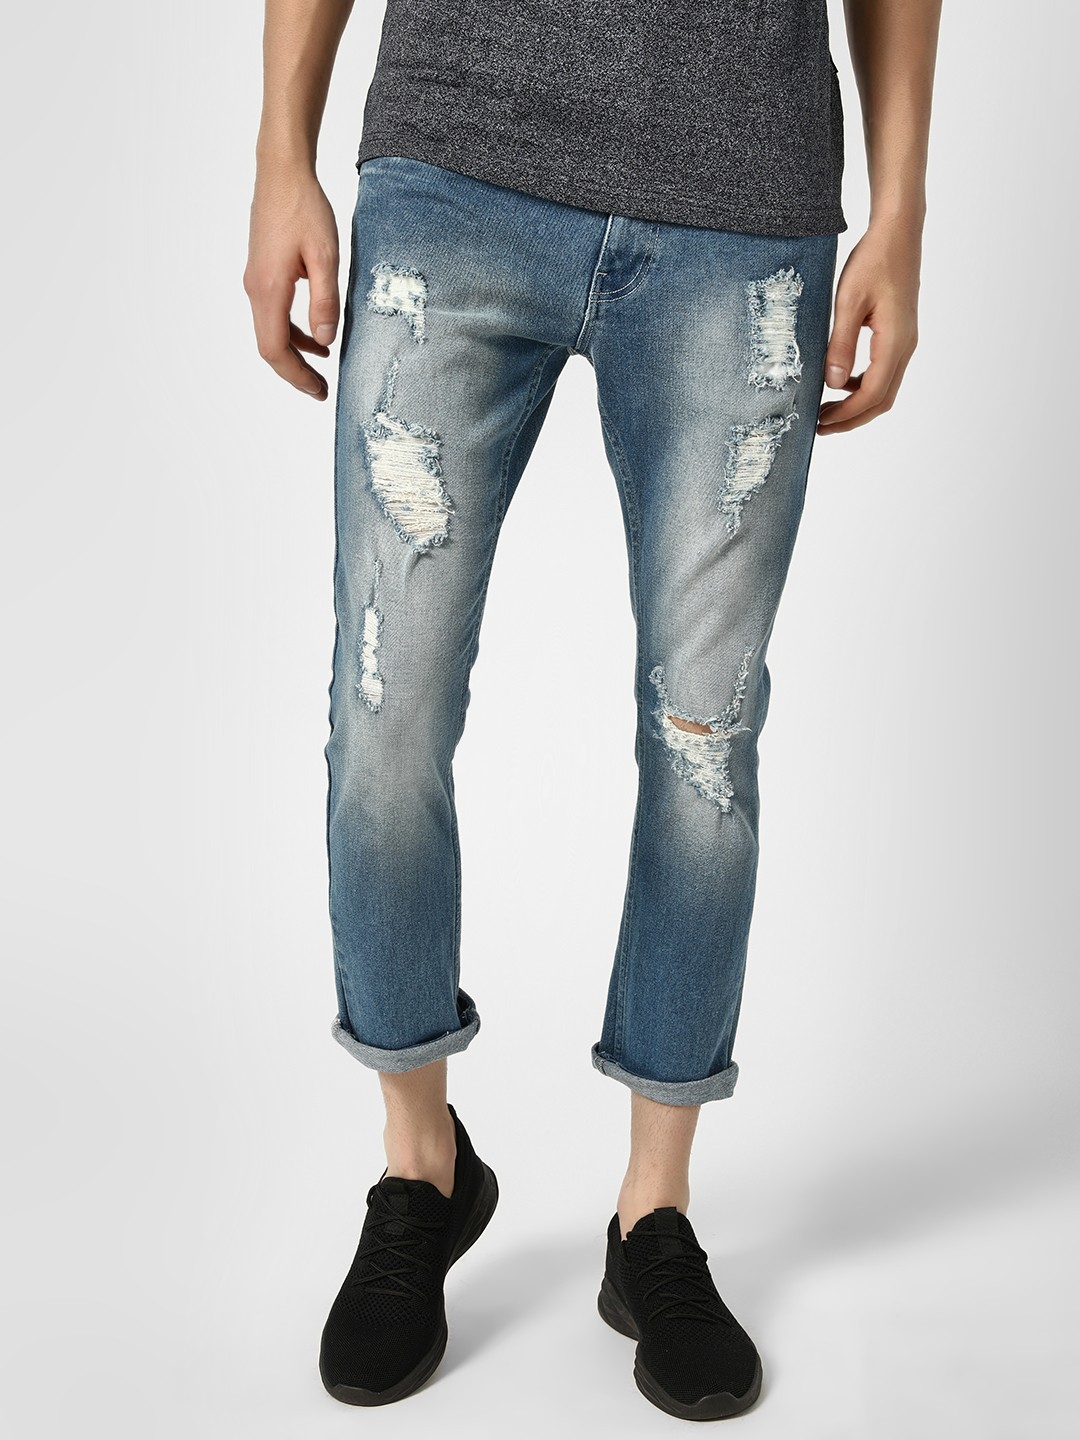 Styx & Stones Blue Distressed Tapered Jeans 1